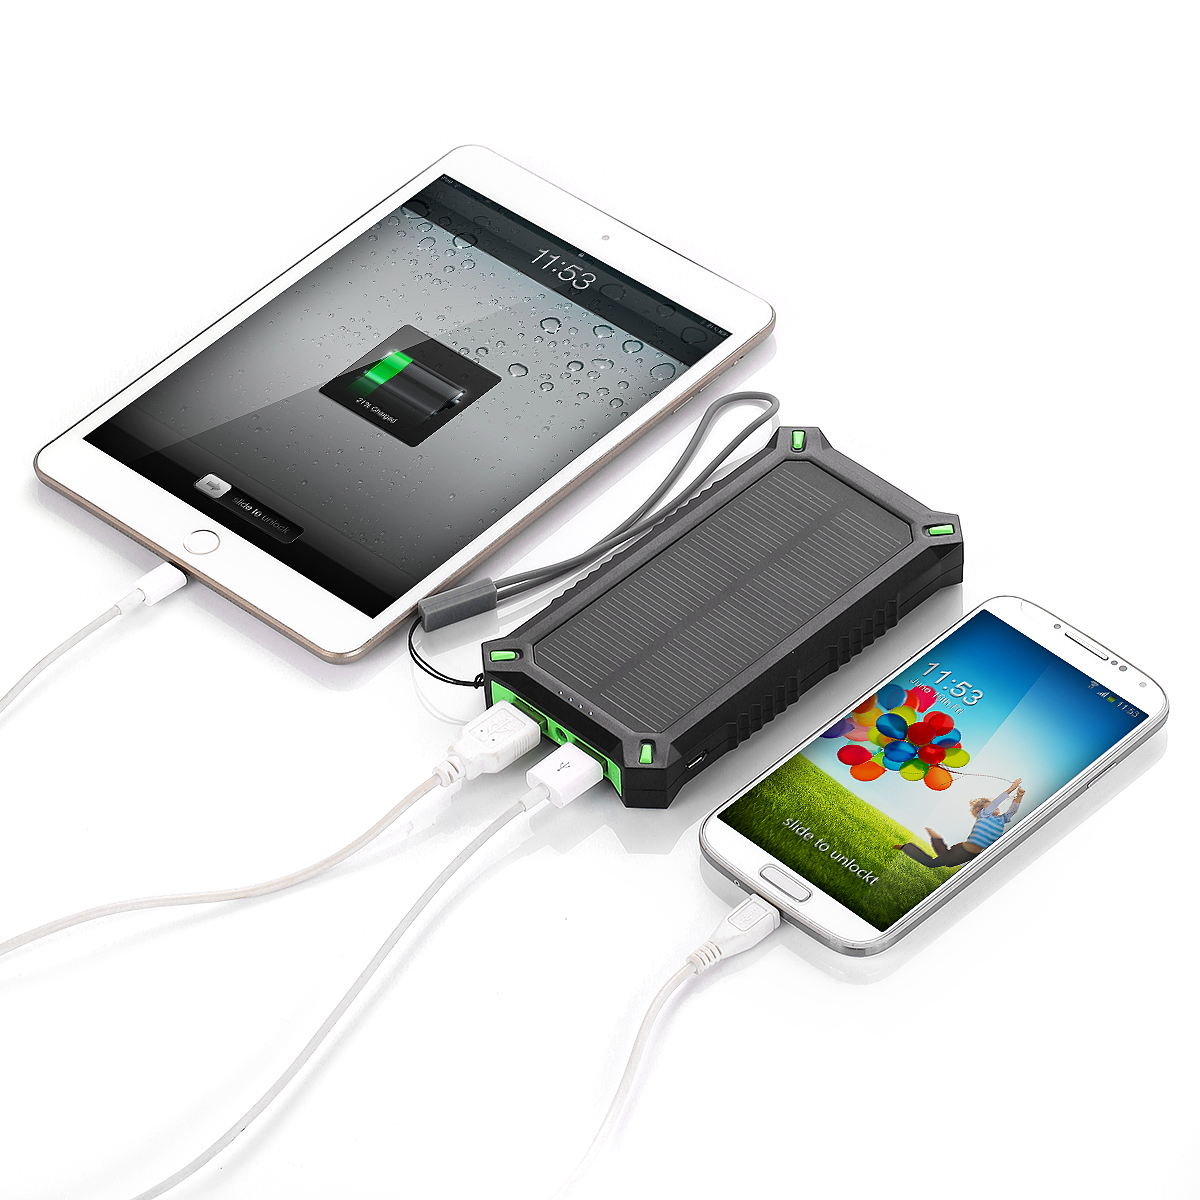 Details about Poweradd 8000mAh Solar Panel Charger Battery Power Bank ...